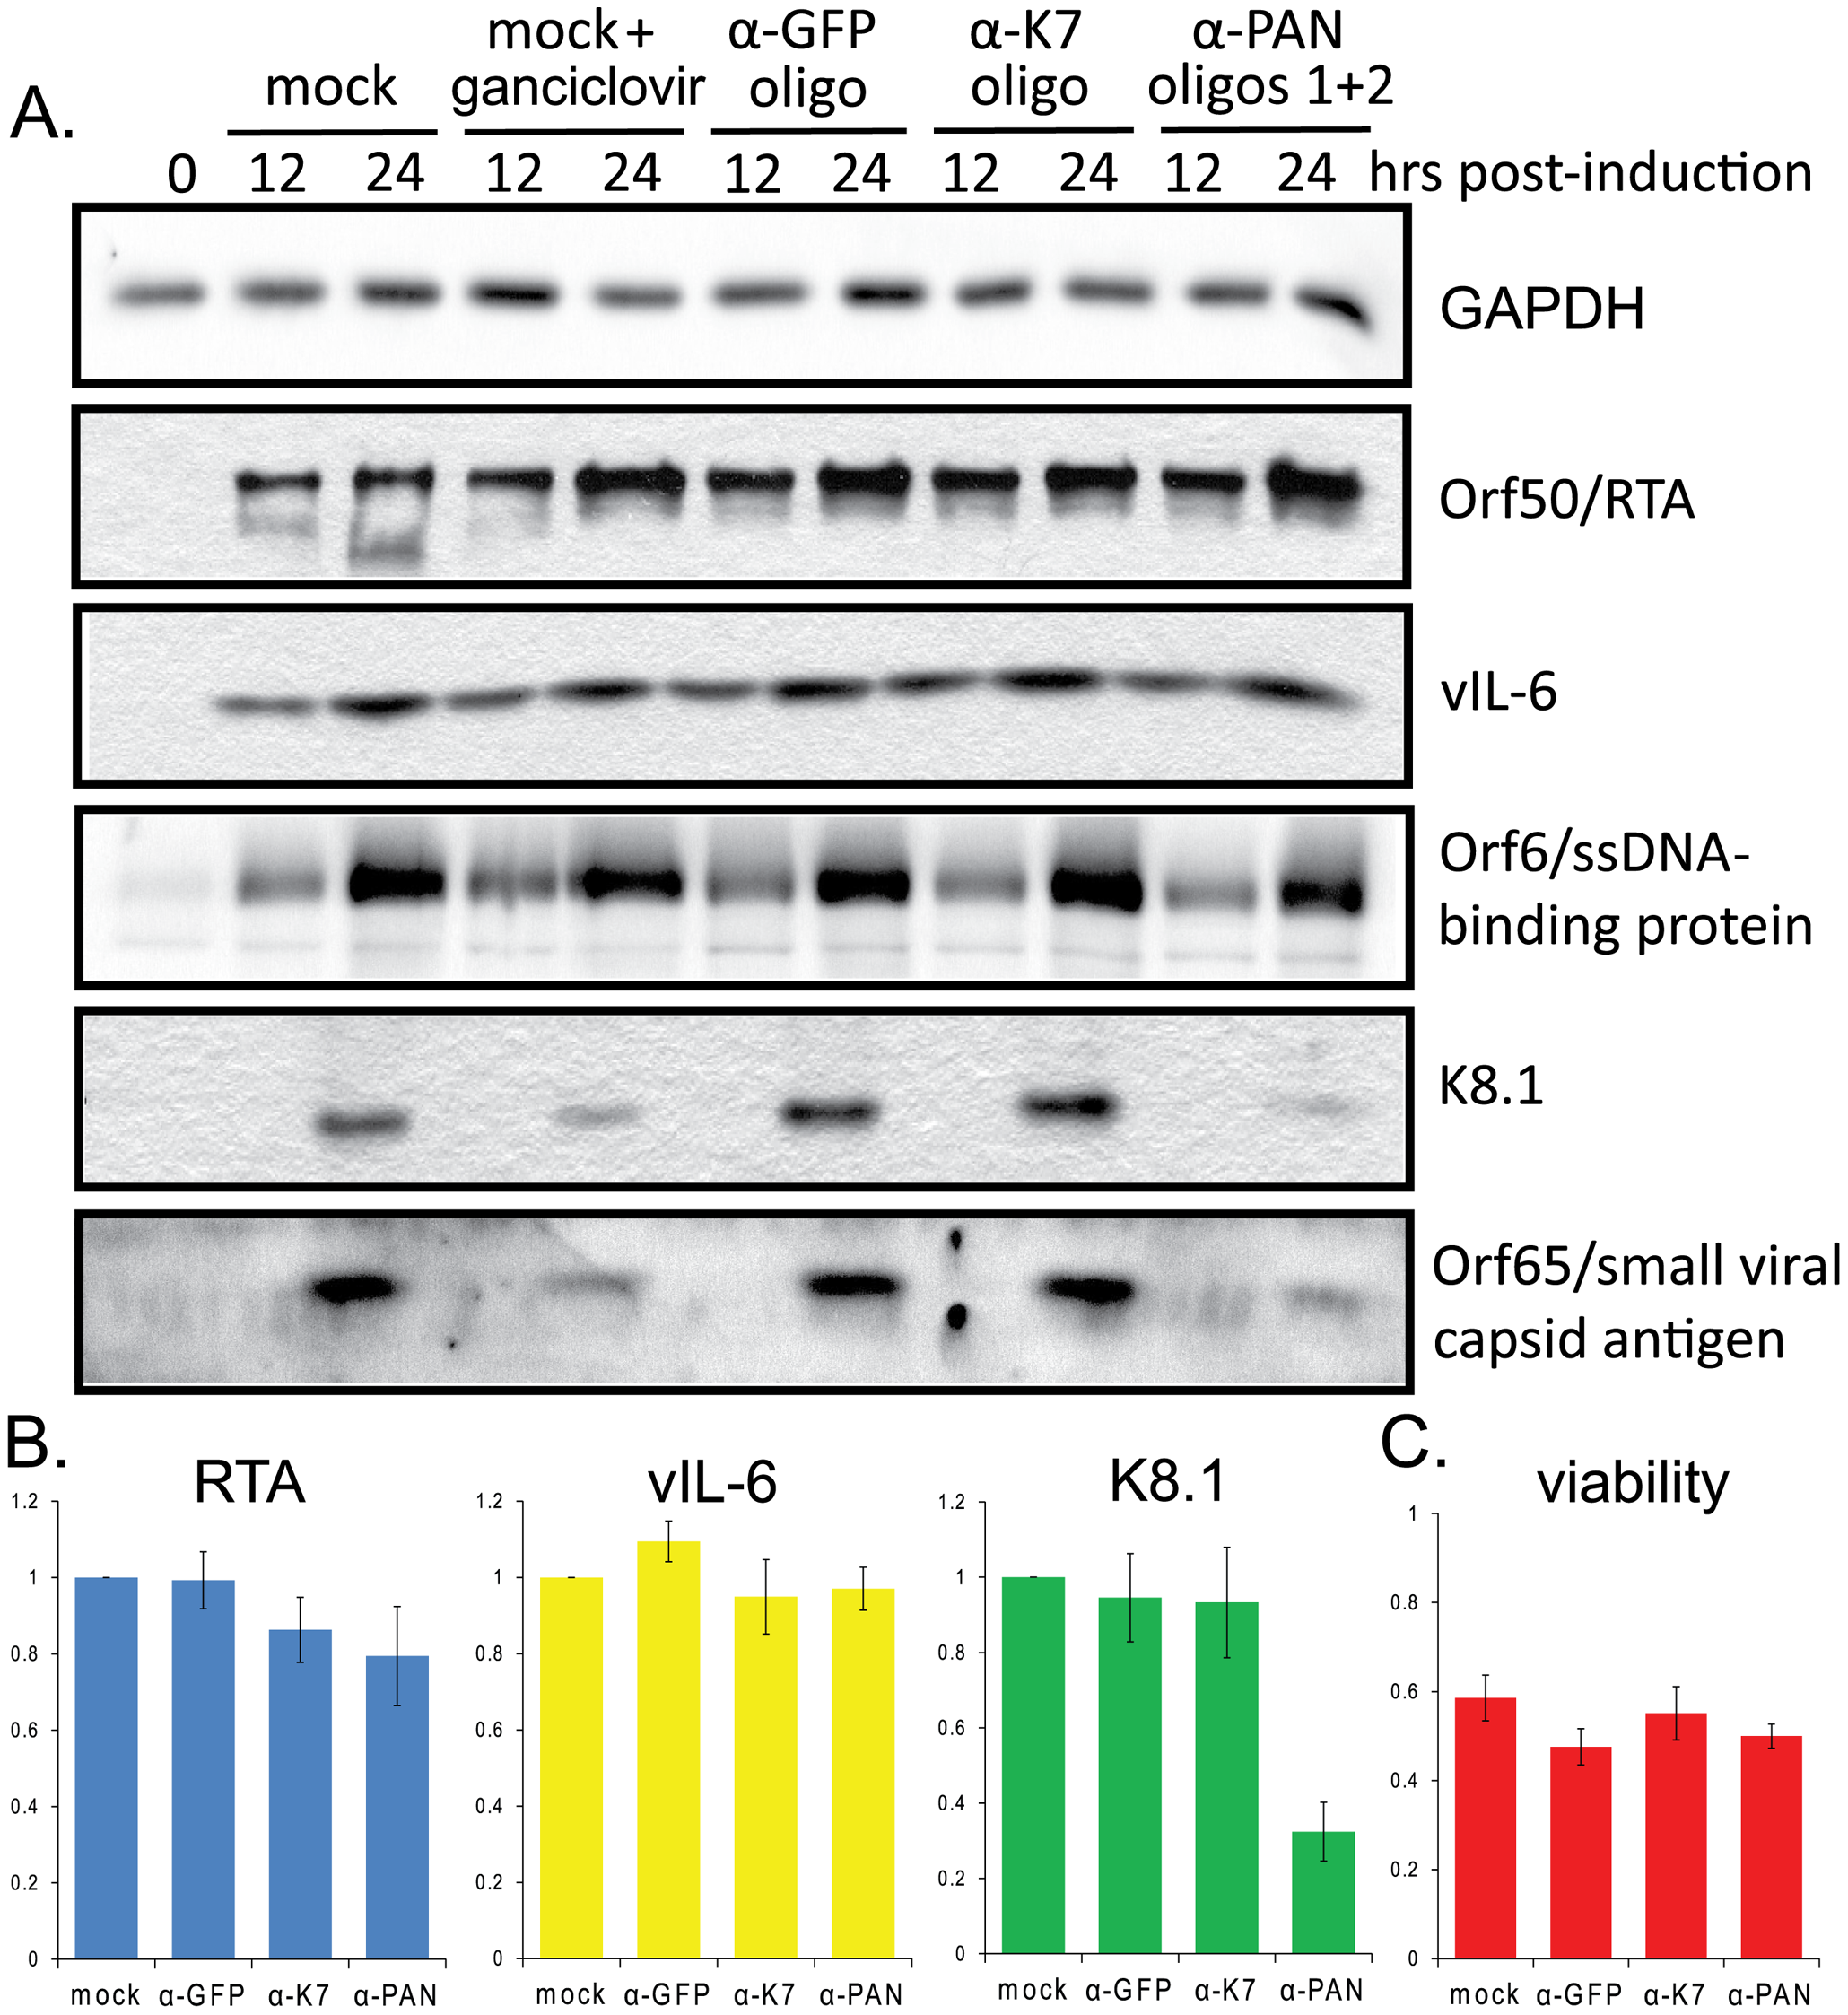 Knockdown of PAN RNA expression adversely affects late gene expression in BCBL1 TReX-RTA cells.